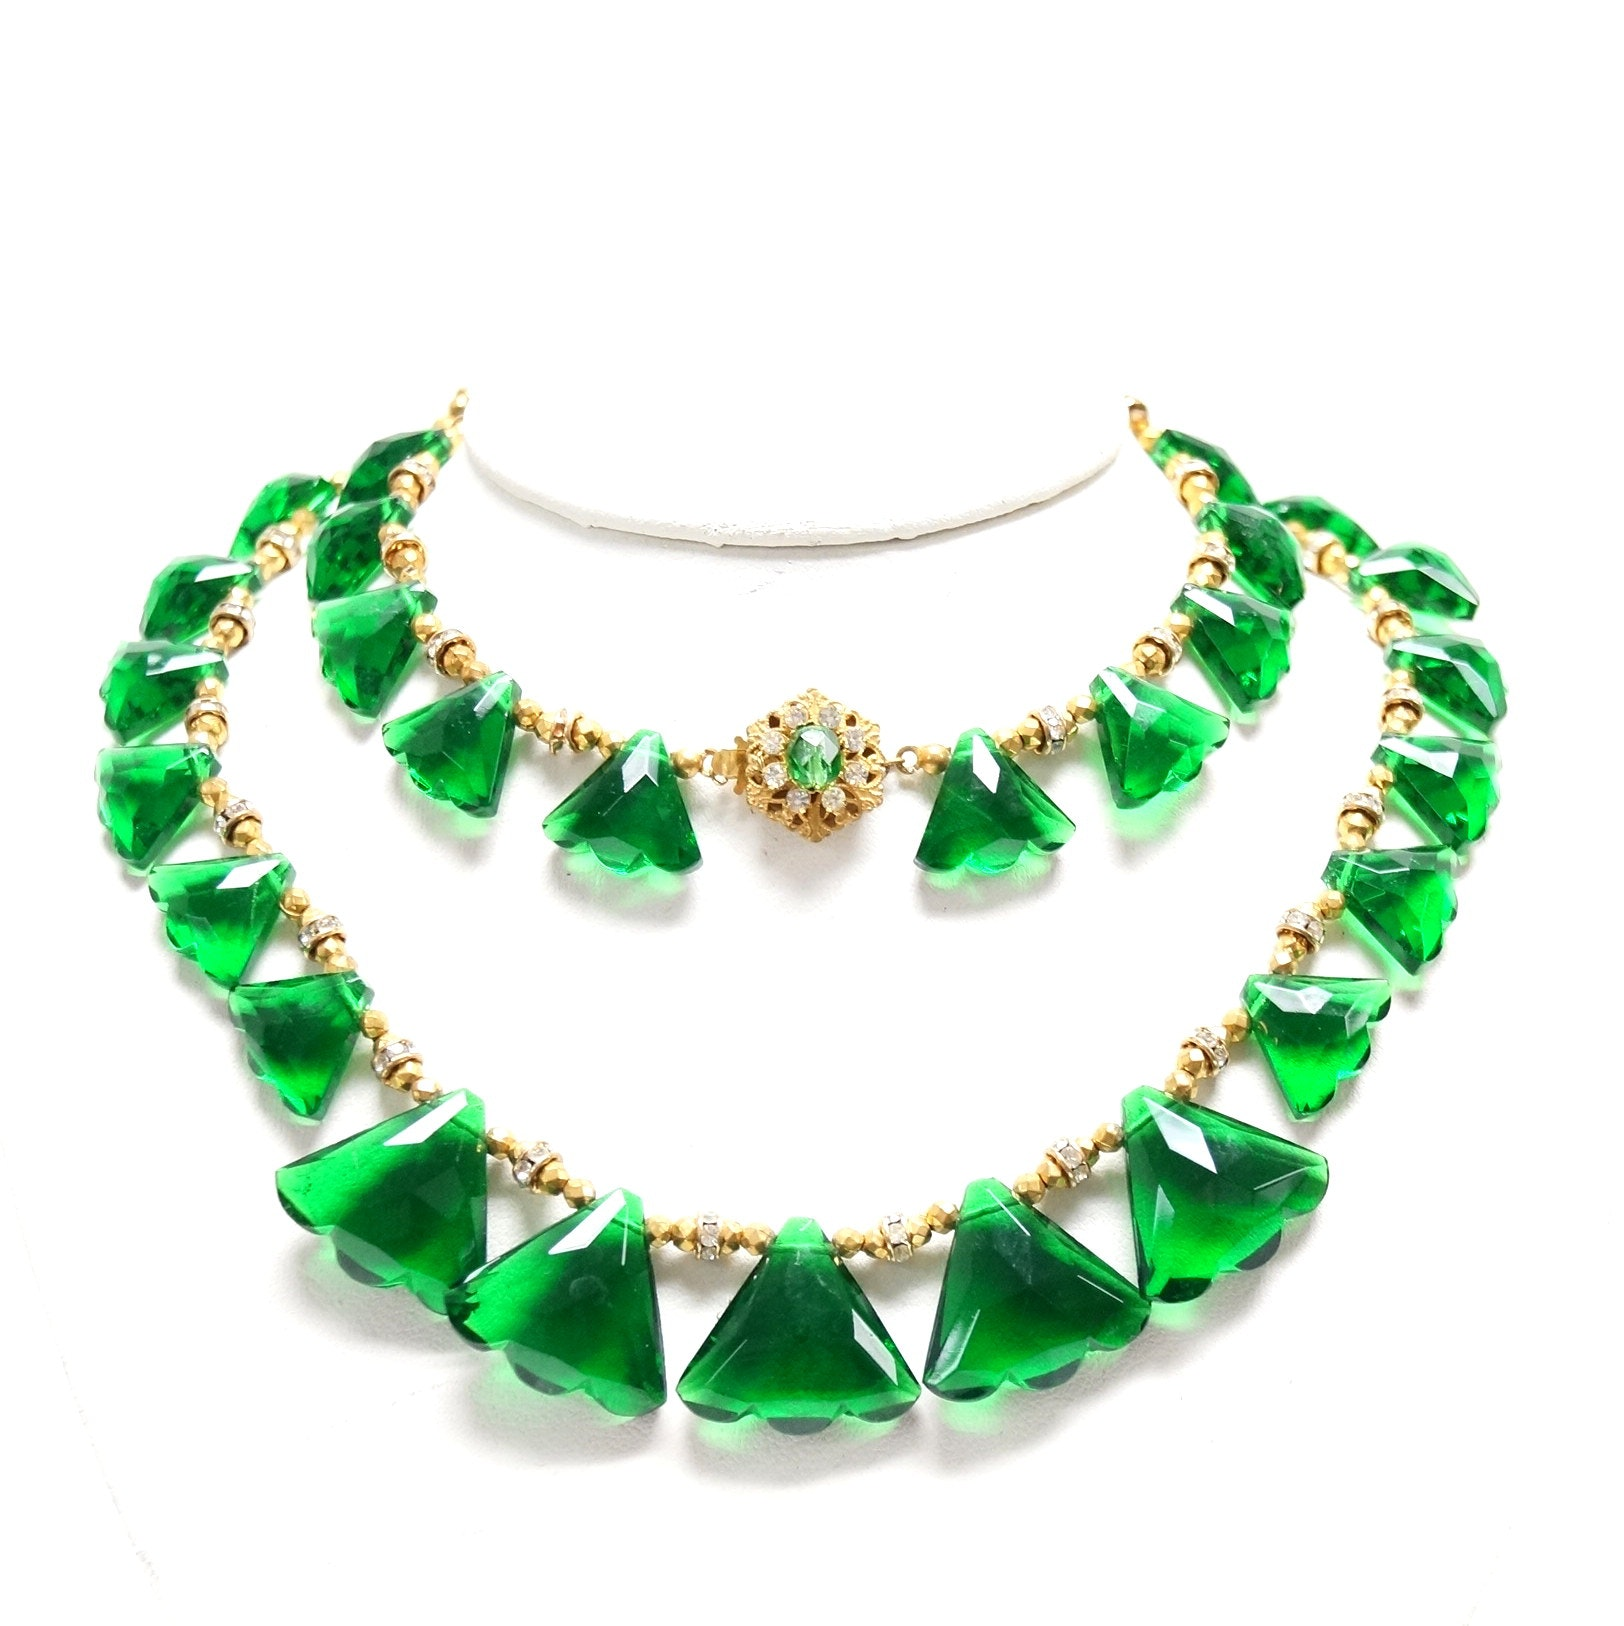 Vintage Miriam Haskell Green Glass Necklace